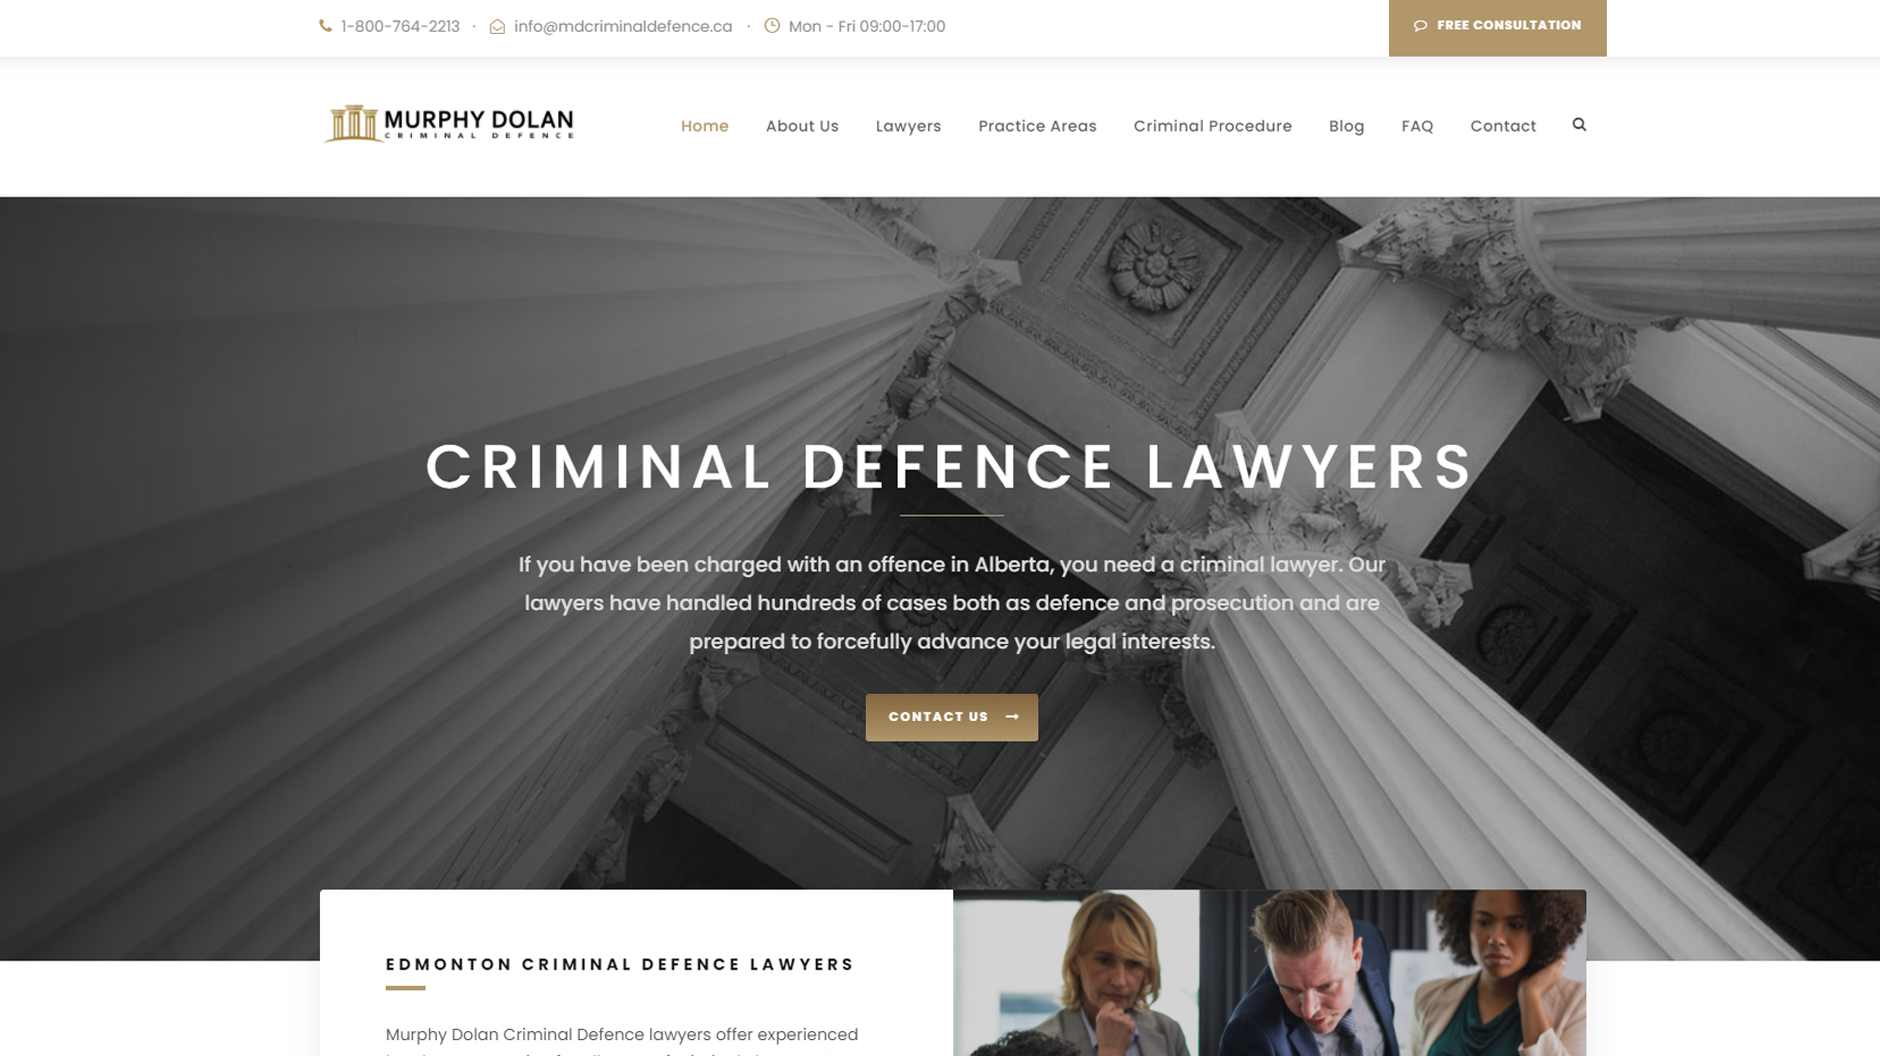 Website Project - Murphy Dolan Criminal Defence